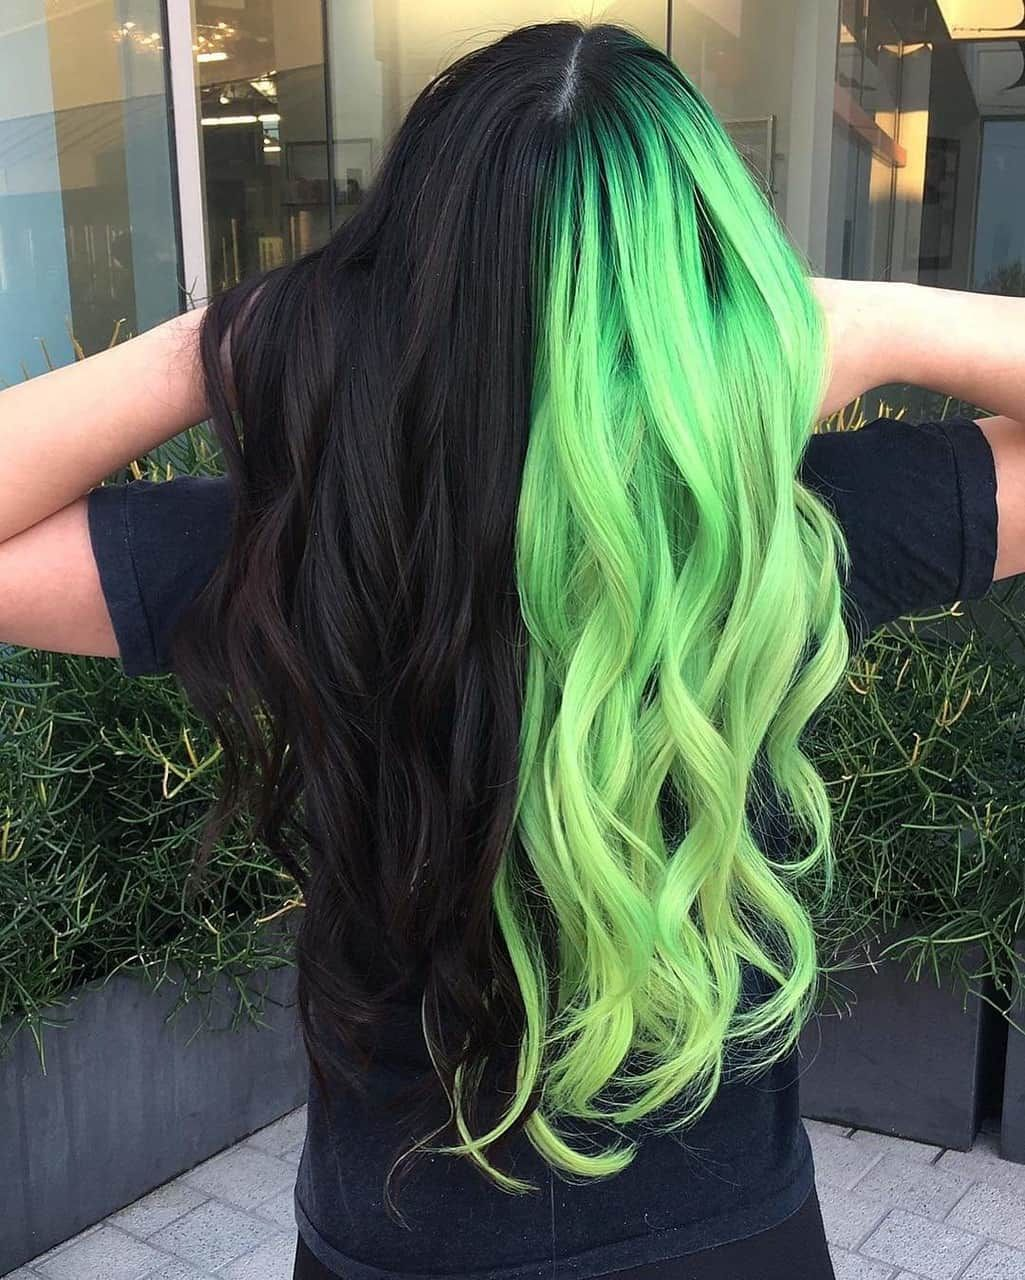 Uploaded By Milacheshire Find Images And Videos About Hair Black And Green On We Heart It The App To Get Perfect Hair Color Hair Dye Colors Hair Styles